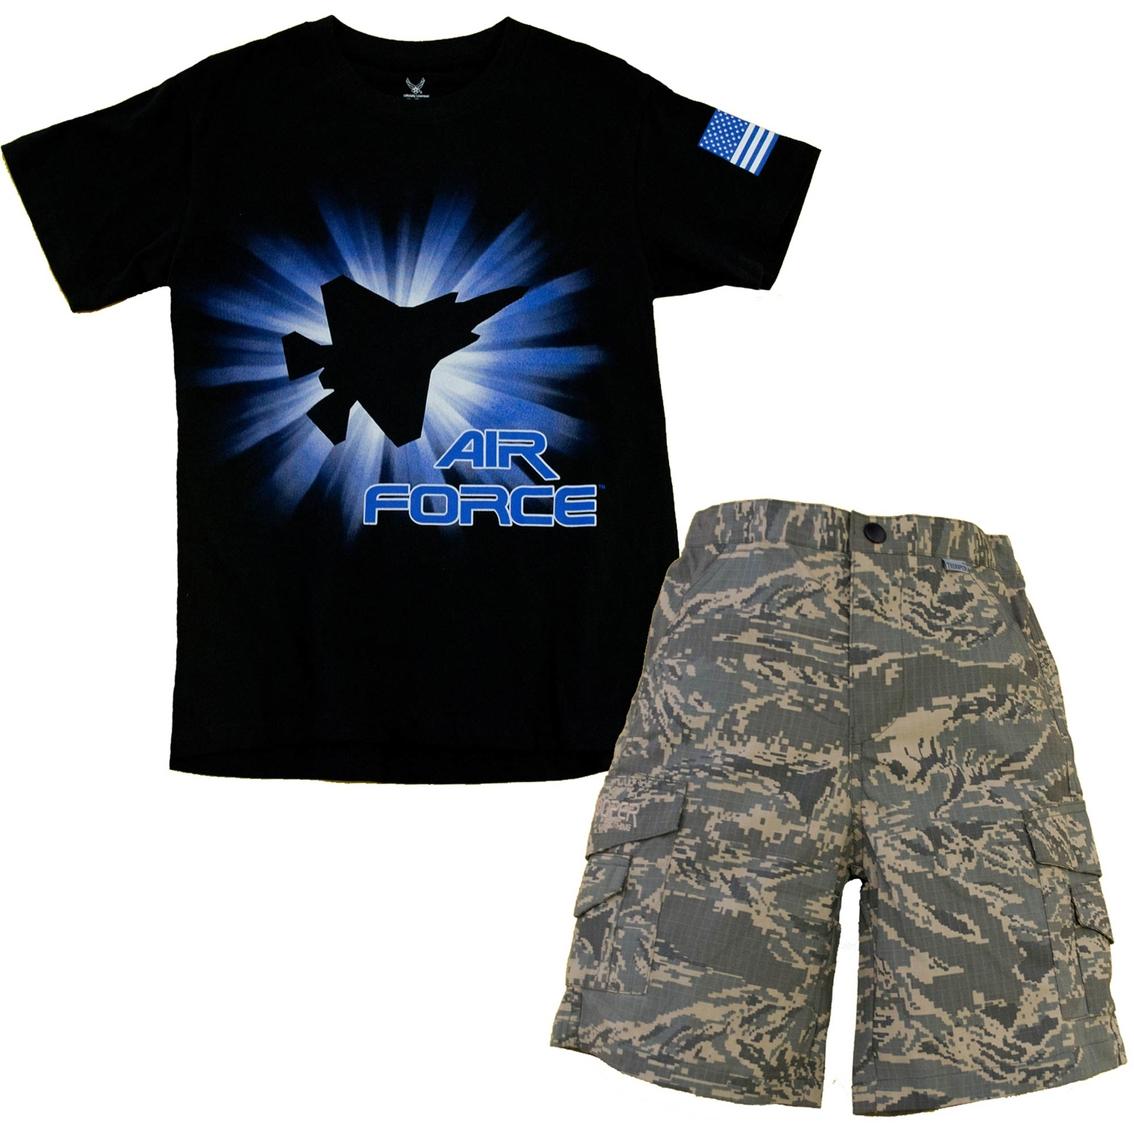 c956295e Trooper Clothing Kids Air Force Tee And Short Set | Boys 4-7x ...